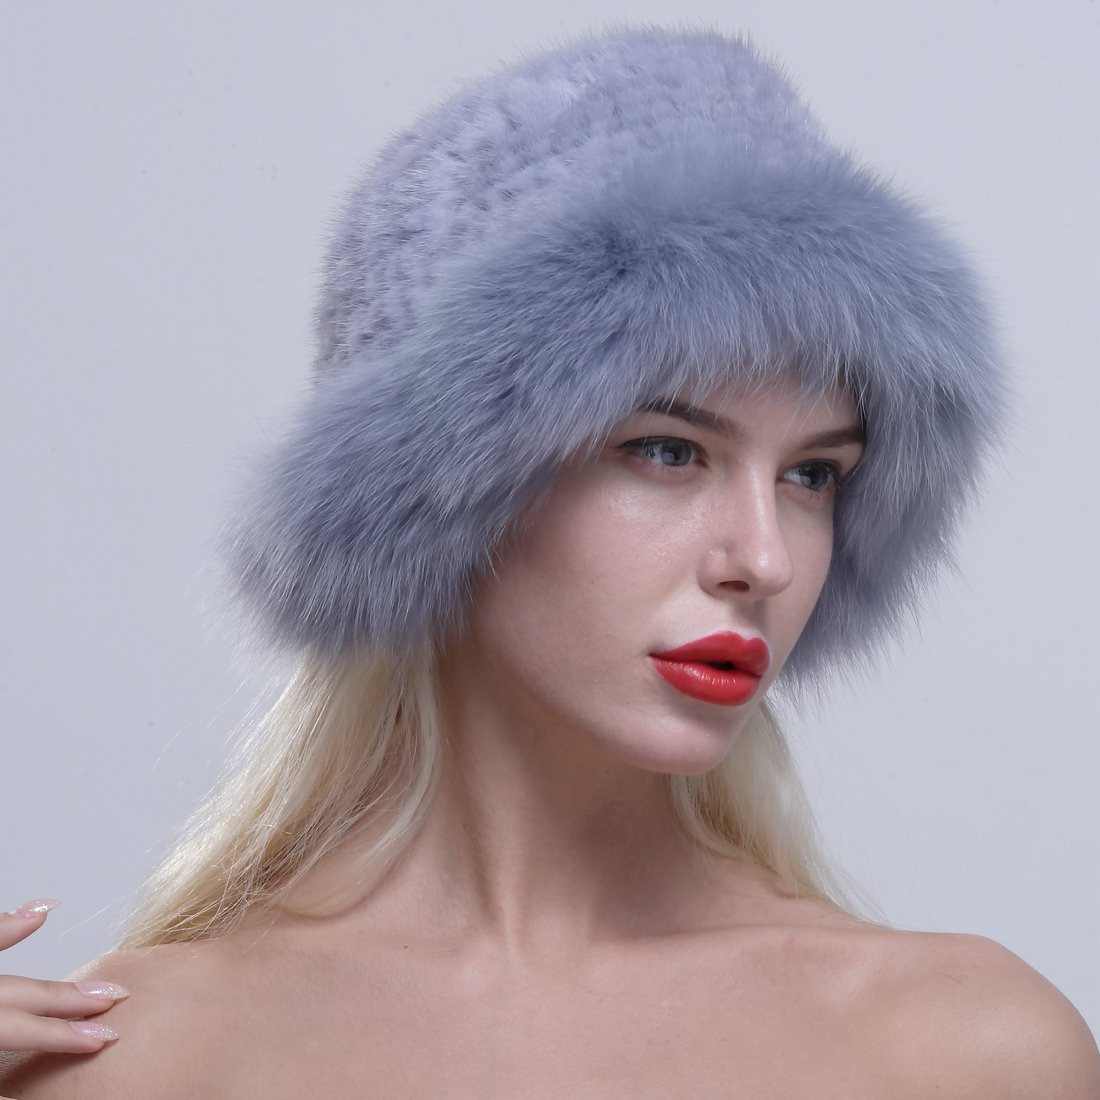 URSFUR Genuine Fox Fur Roller Hat with Knit Mink Top Sapphire by URSFUR (Image #4)